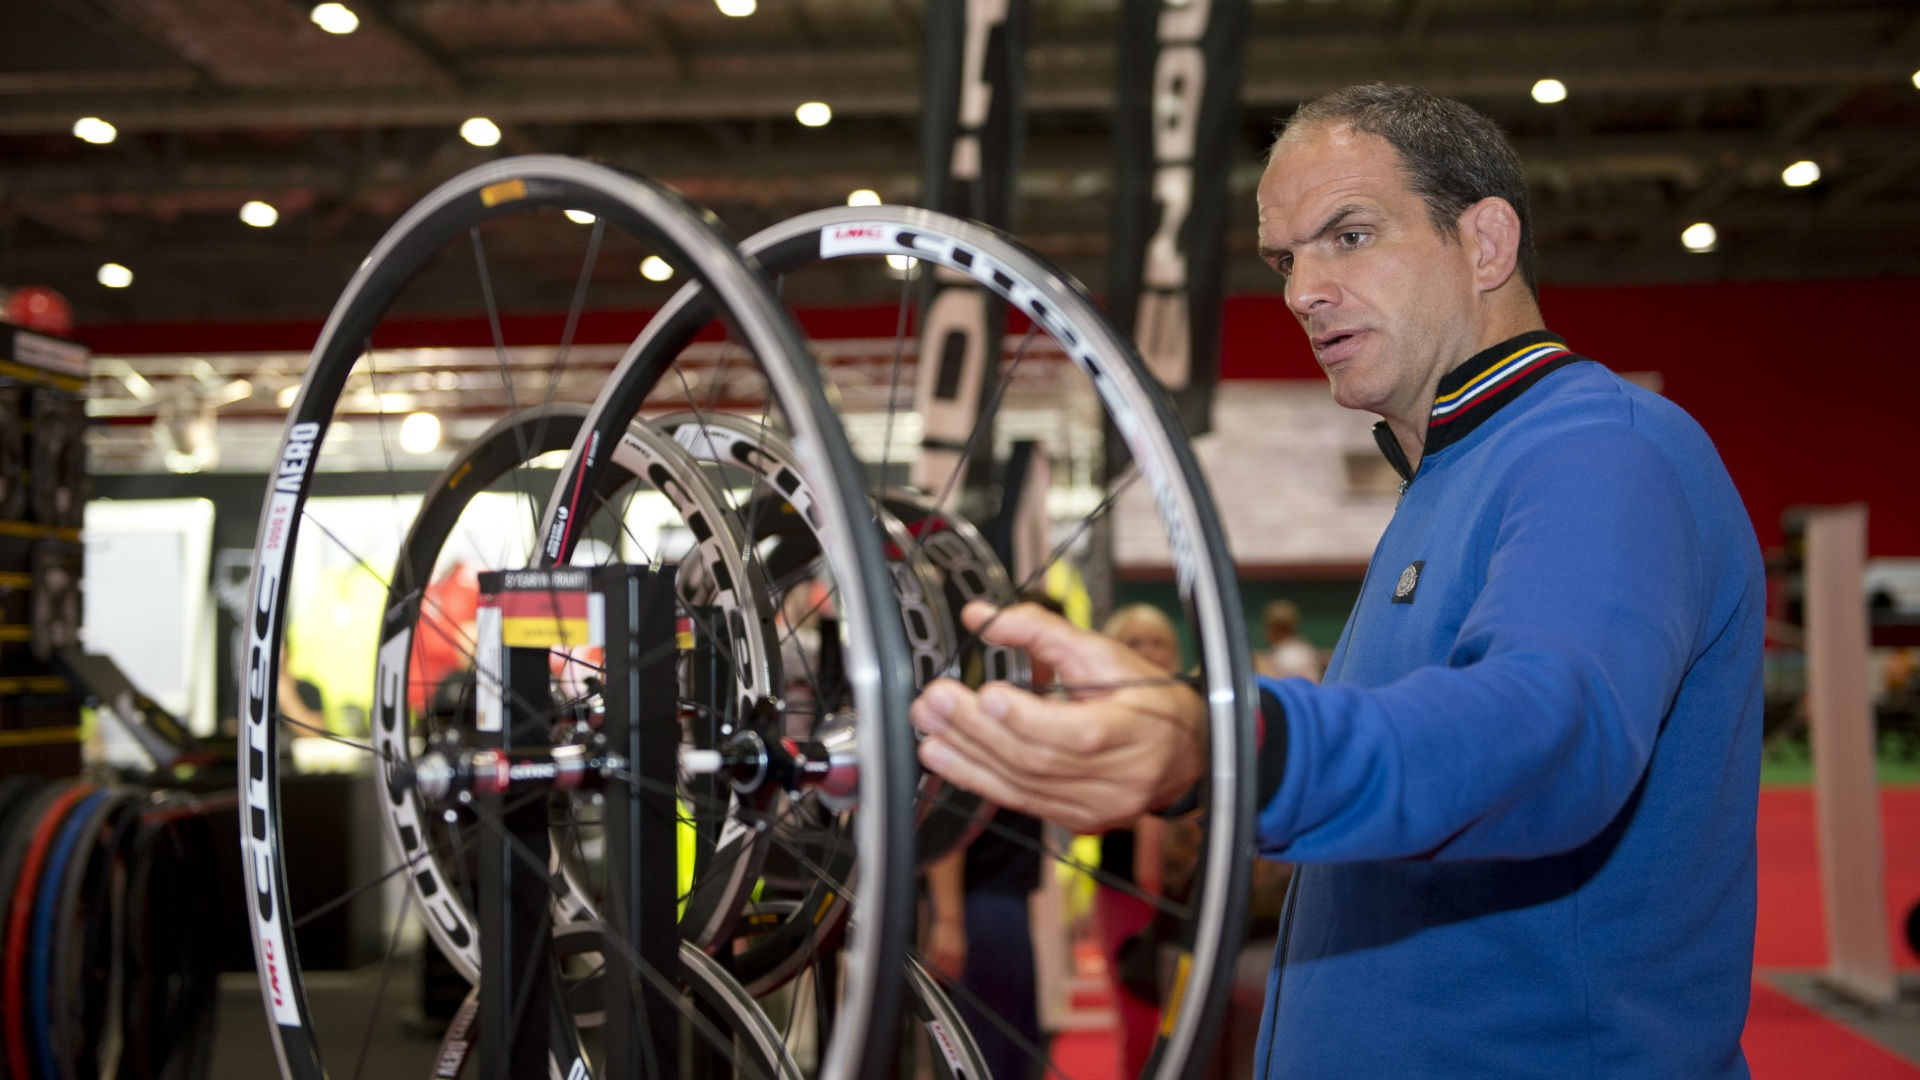 Rugby player Martin Johnson checks out the latest gear at the Prudential RideLondon Cycling Show at ExCel London. Image courtesy of Prudential RideLondon